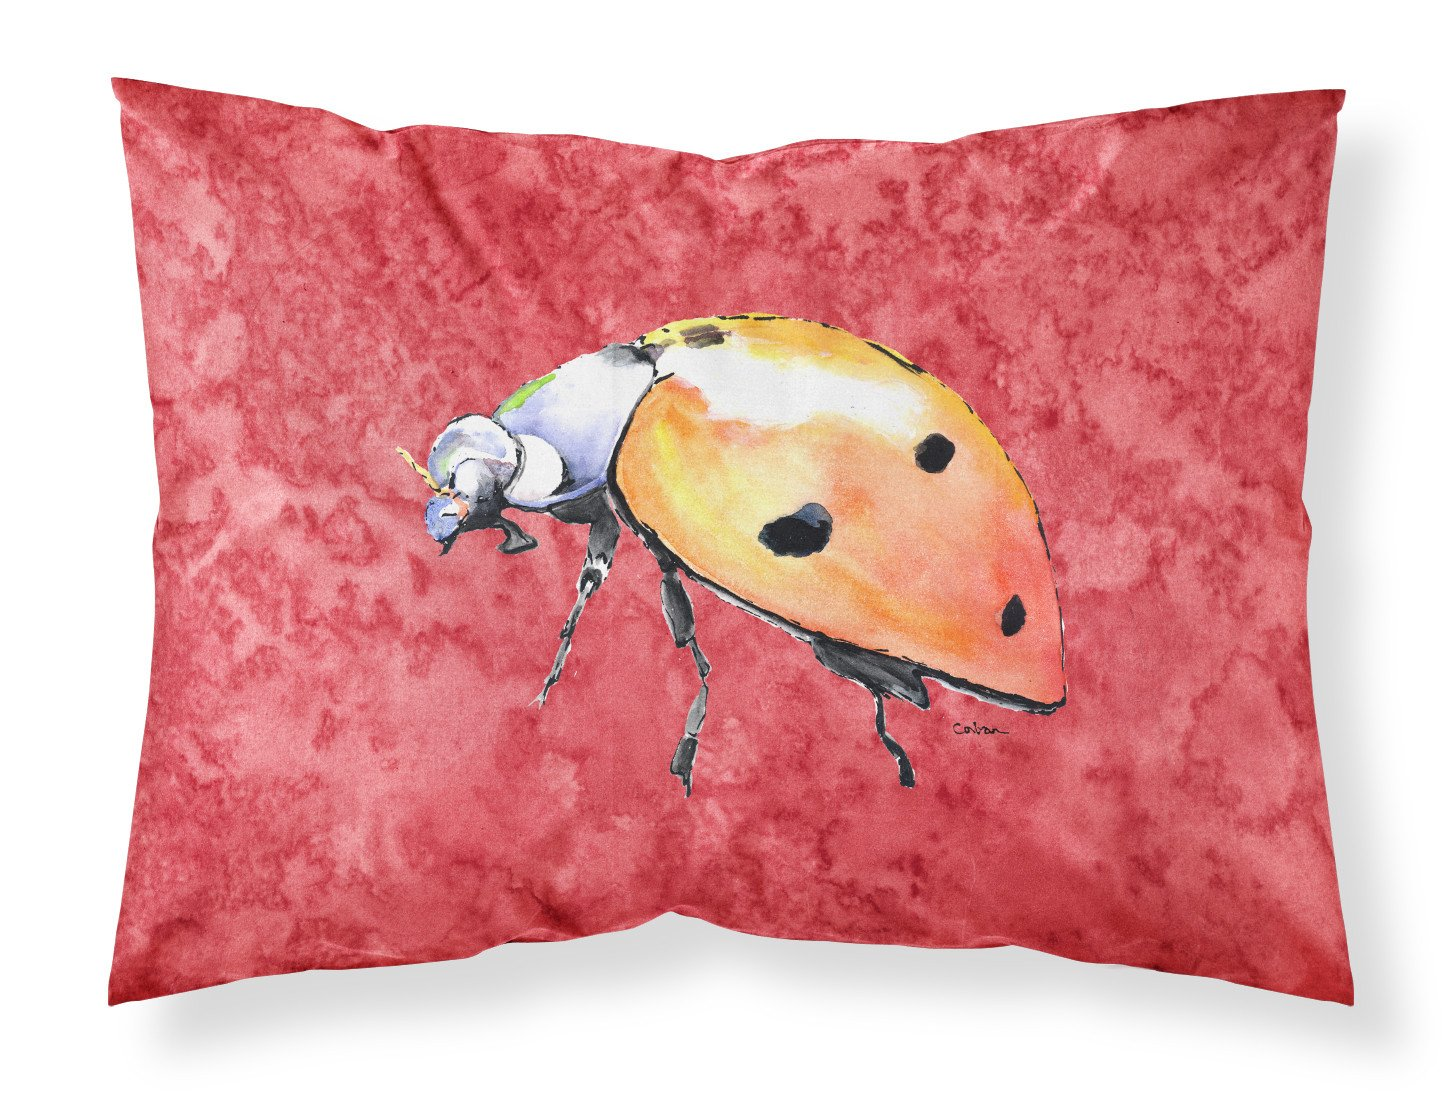 Buy this Lady Bug on Red Moisture wicking Fabric standard pillowcase